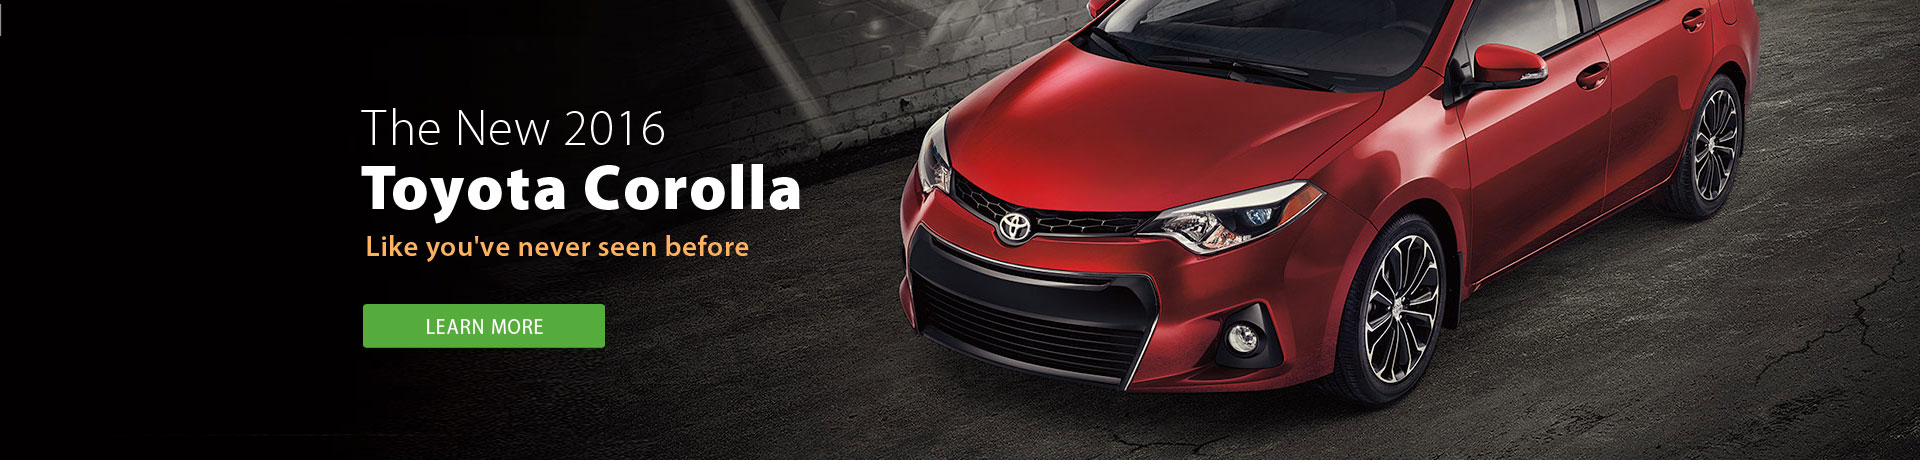 2016 Toyota Corolla - Learn more